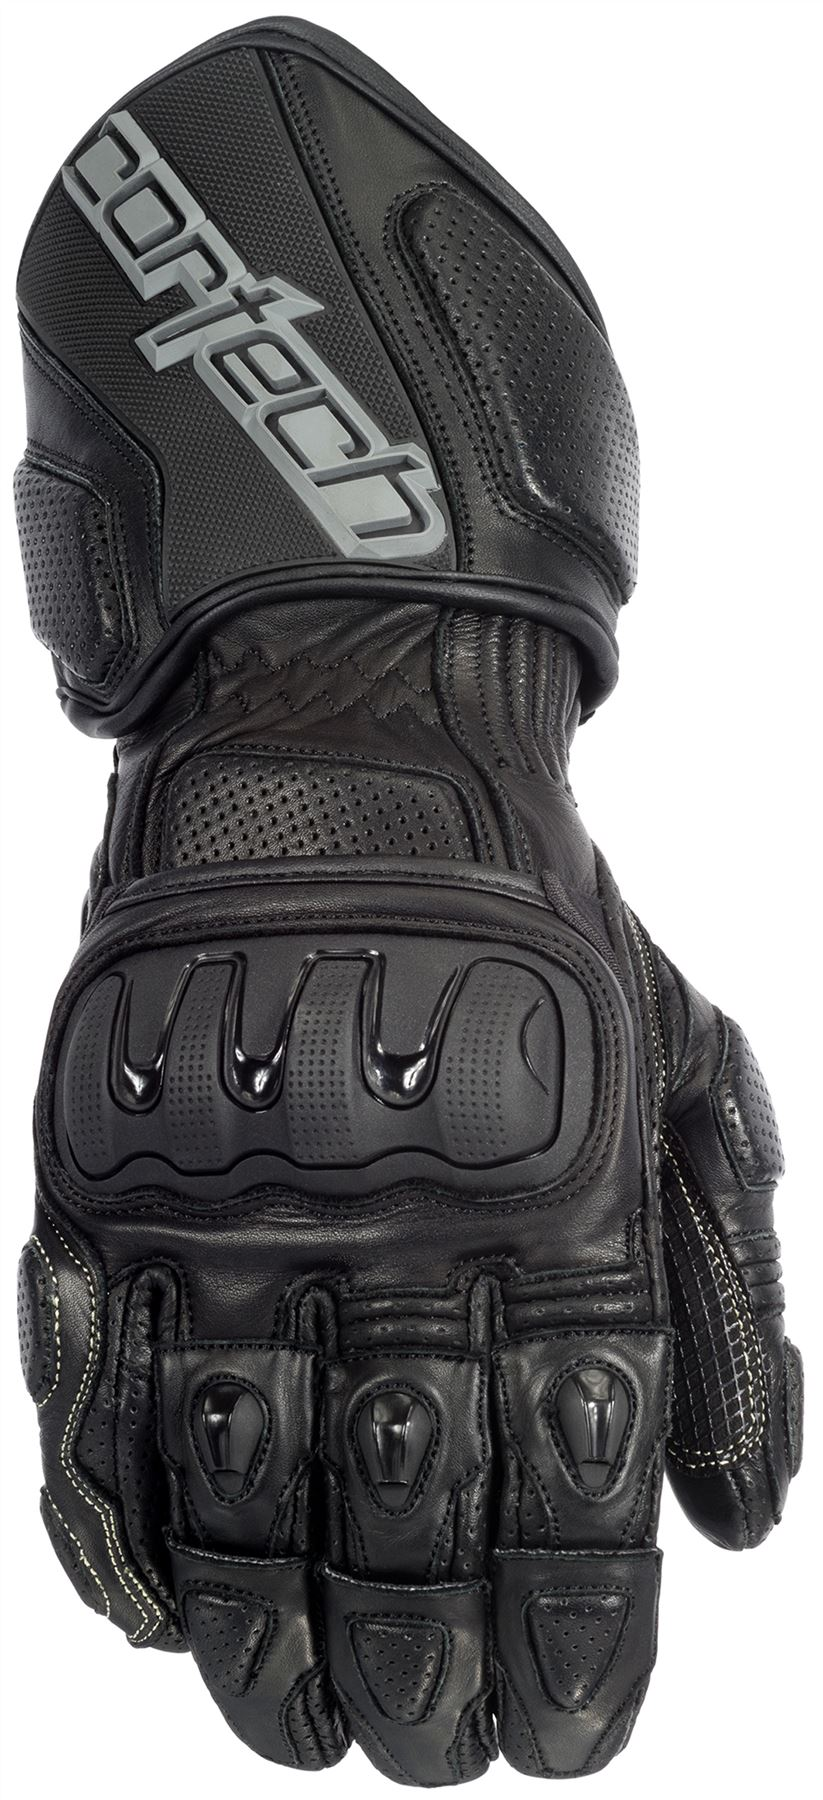 Xs black leather gloves - Cortech Impulse Rr Motorcycle Leather Gloves Abrasion Resistant